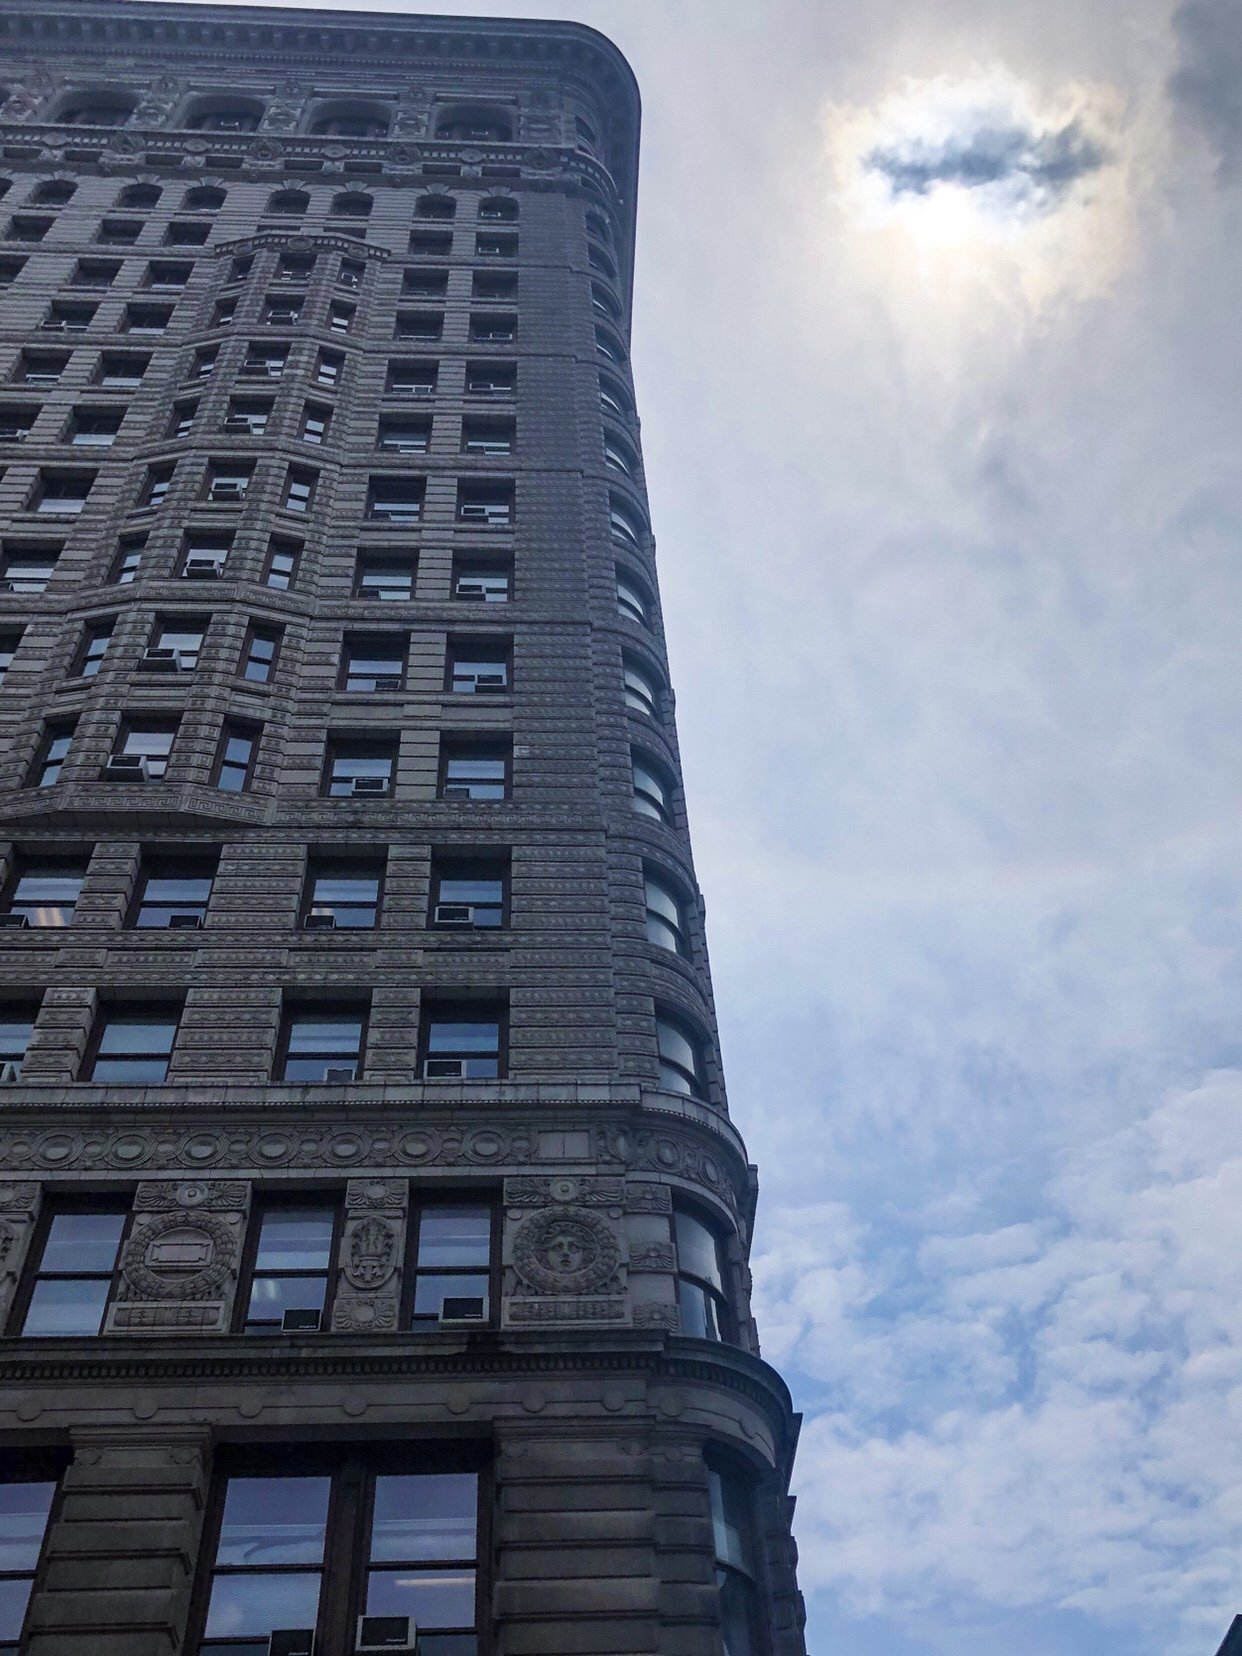 4 Tage in New York City -Flat Iron Building - Nowshine Reiseblog ü 40